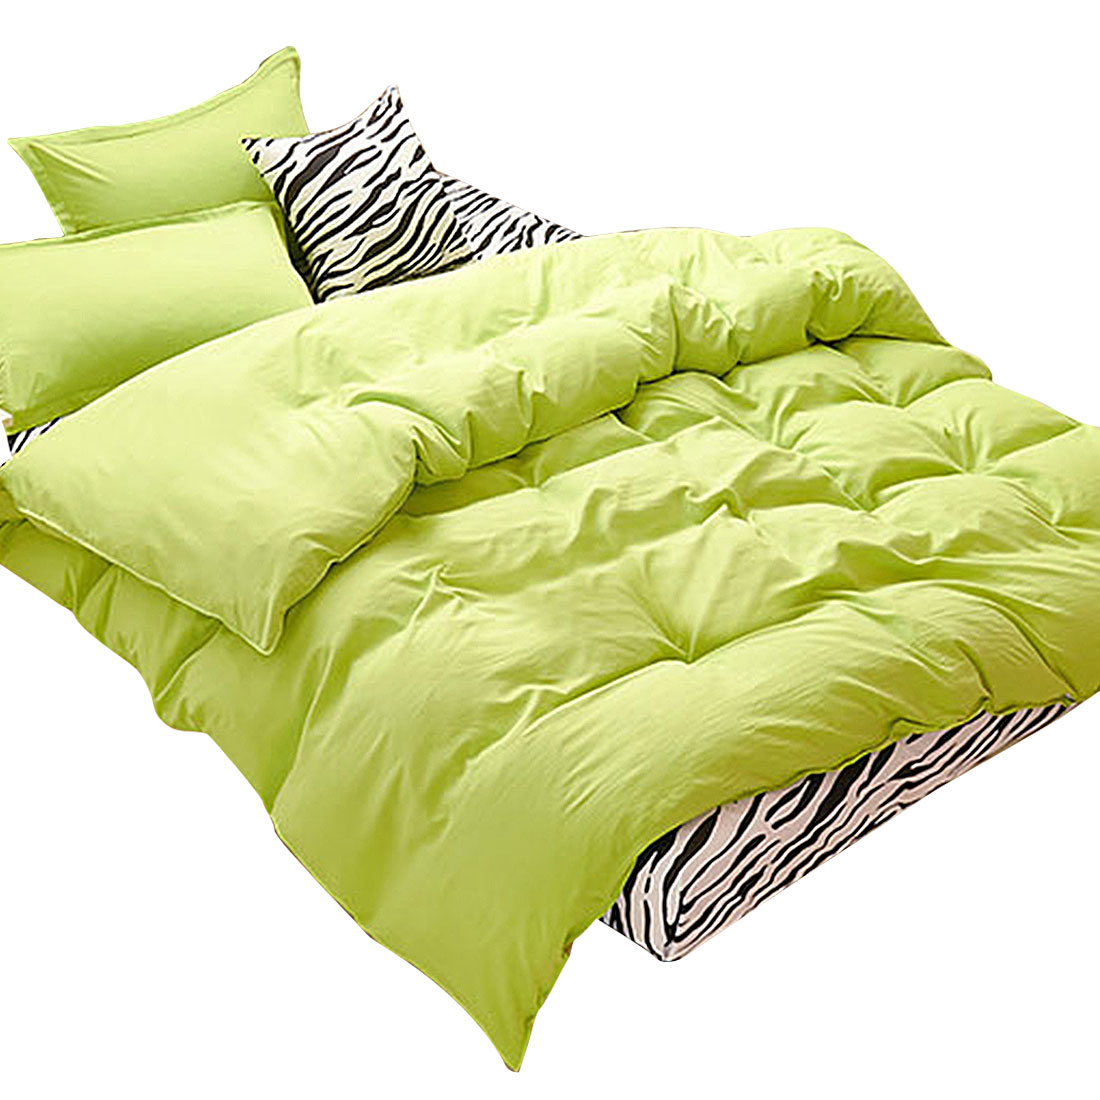 Bedroom Duvet Quilt Cover Pillowcase Bedding Set Bedclothes Green King Size